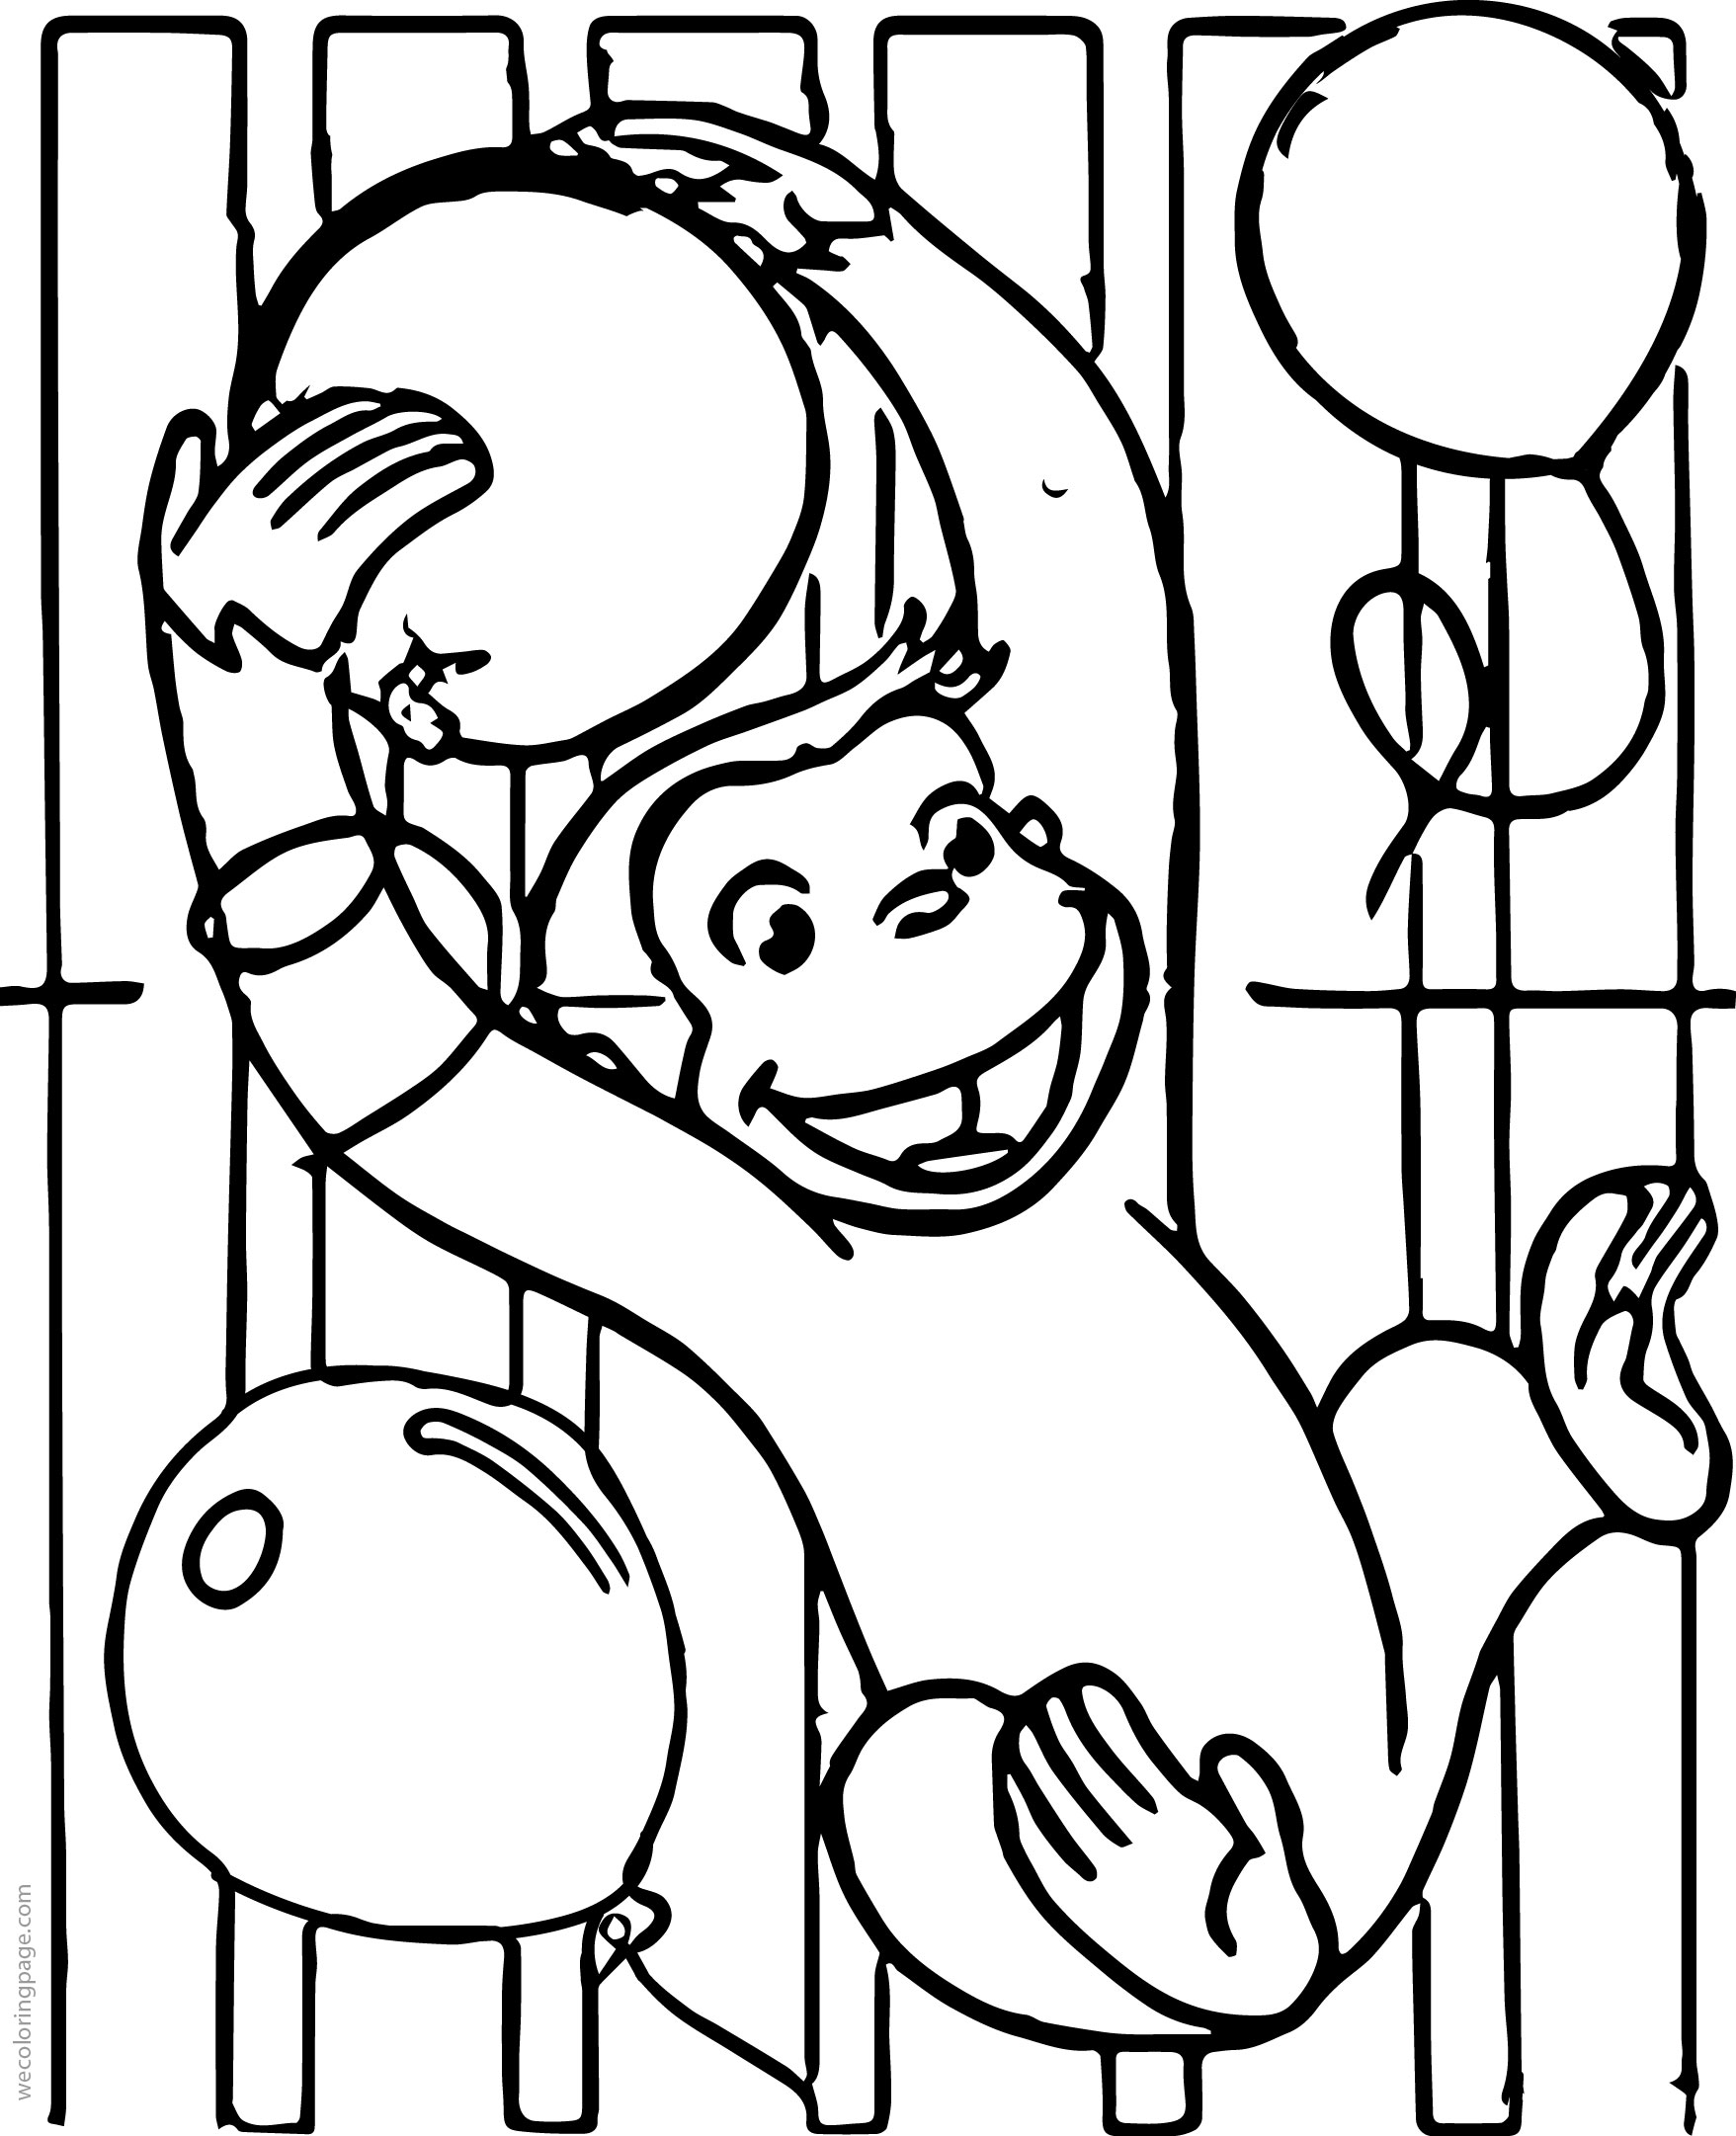 Curious George Party Invitations Coloring Page